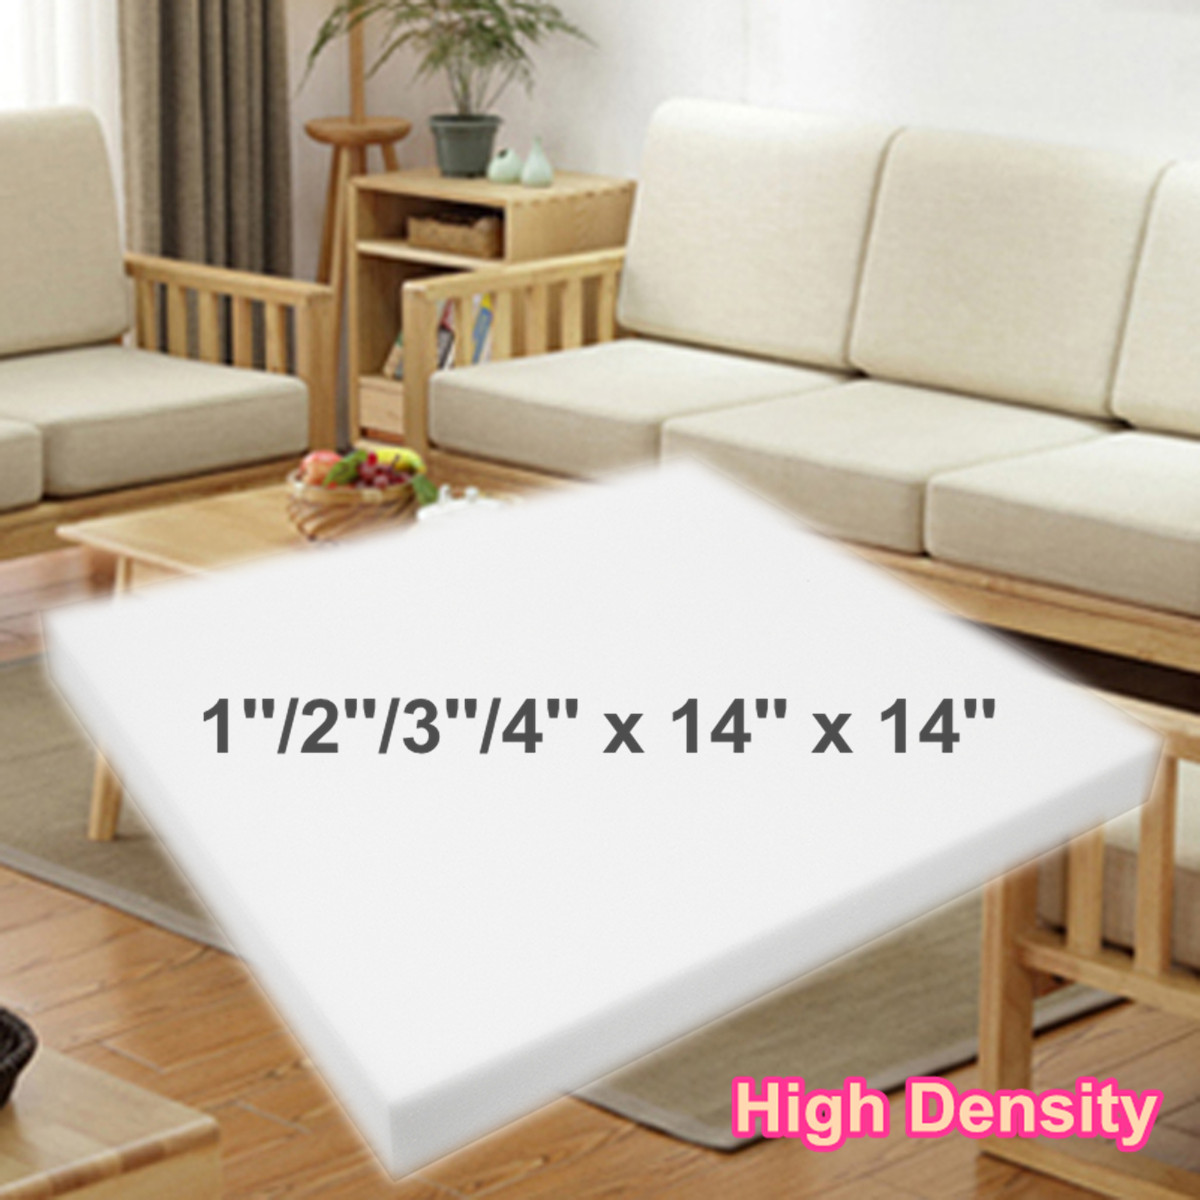 Sofa With Foam Seats Details About 14 Square High Density Seat Foam Sheet Upholstery Cushion Replacement Firm Pad